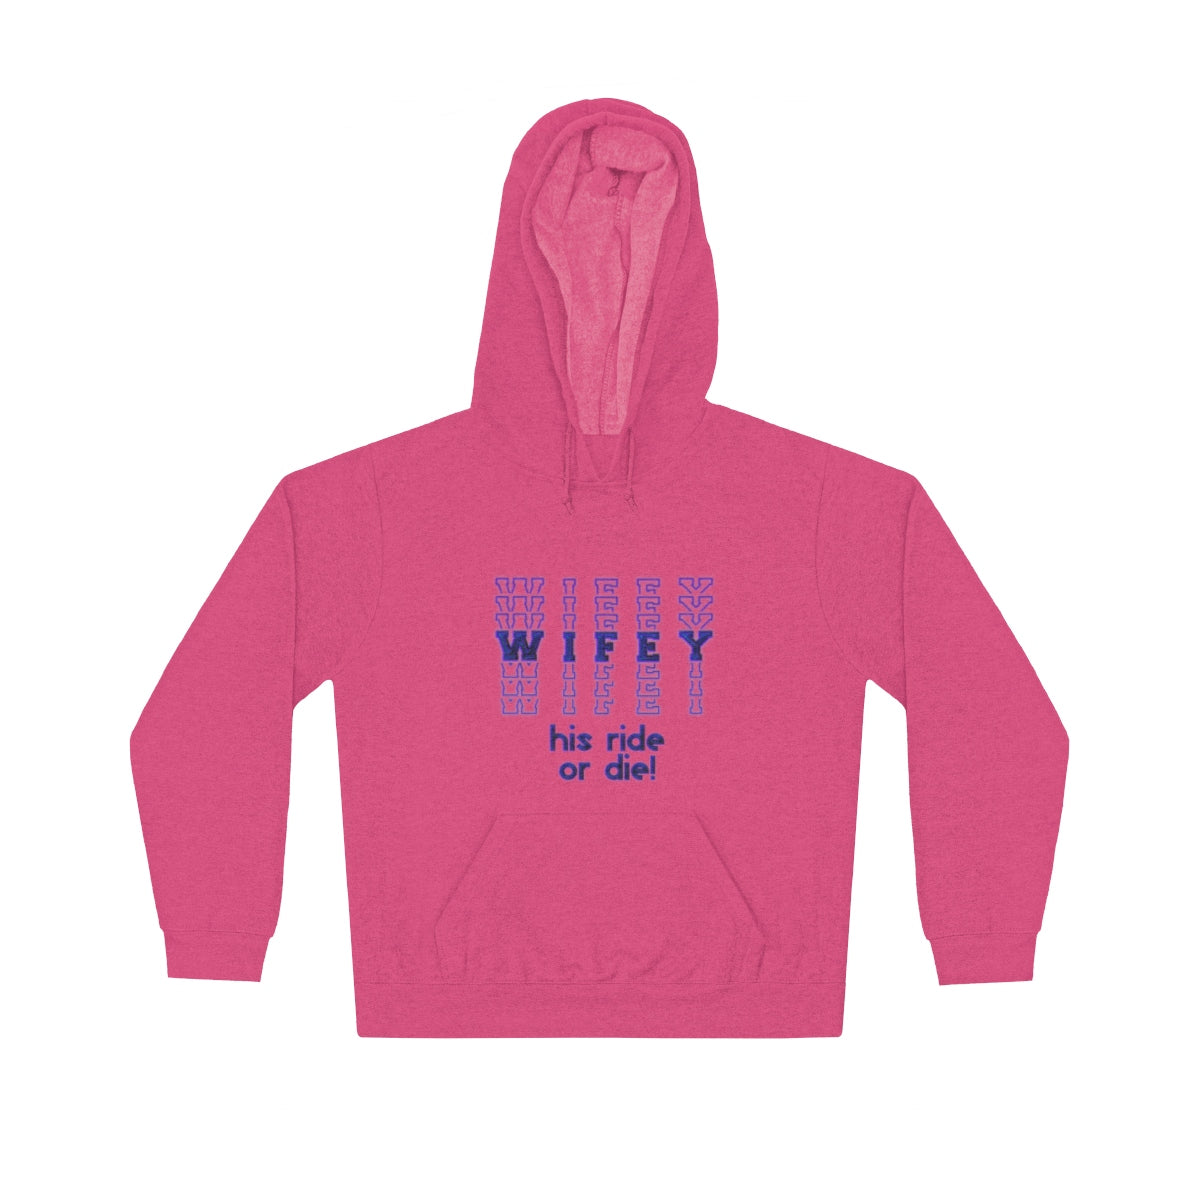 Wifey His Ride or Die Unisex Lightweight Hoodie - skyrockettees